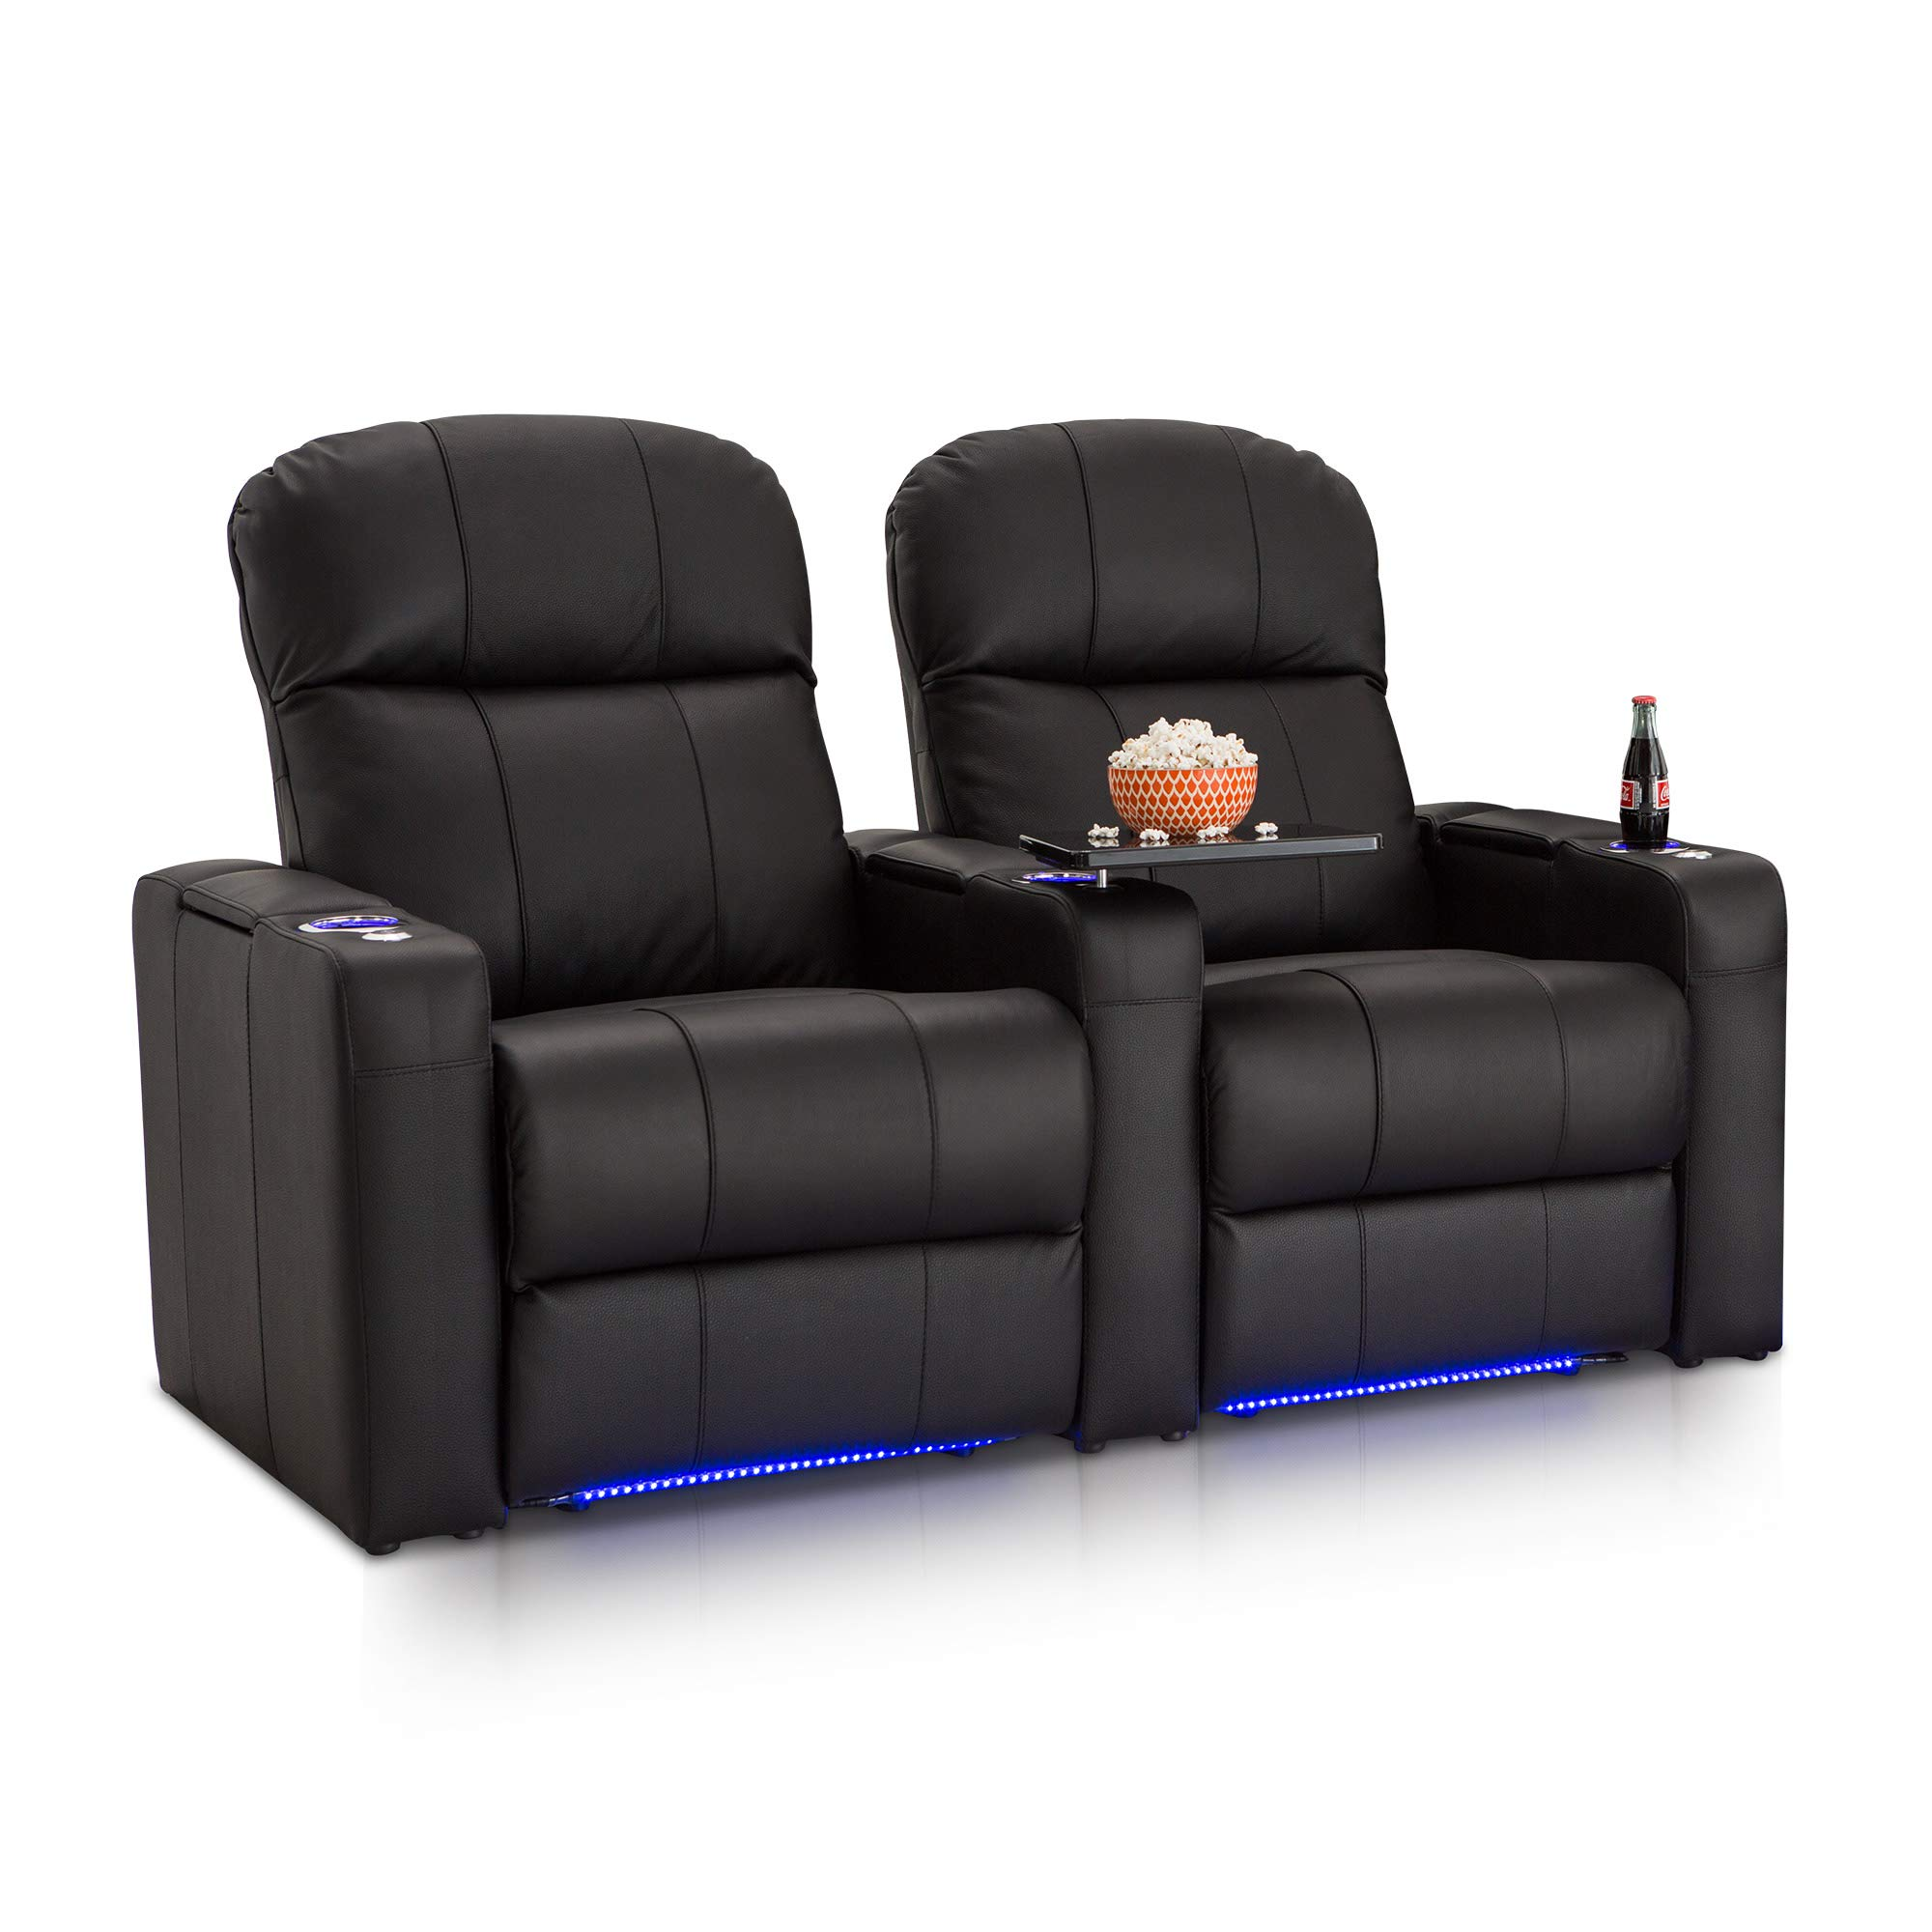 Seatcraft Venetian Black Bonded Leather Home Theater Seating - Row of 2 Seats - Manual Recline by Seatcraft